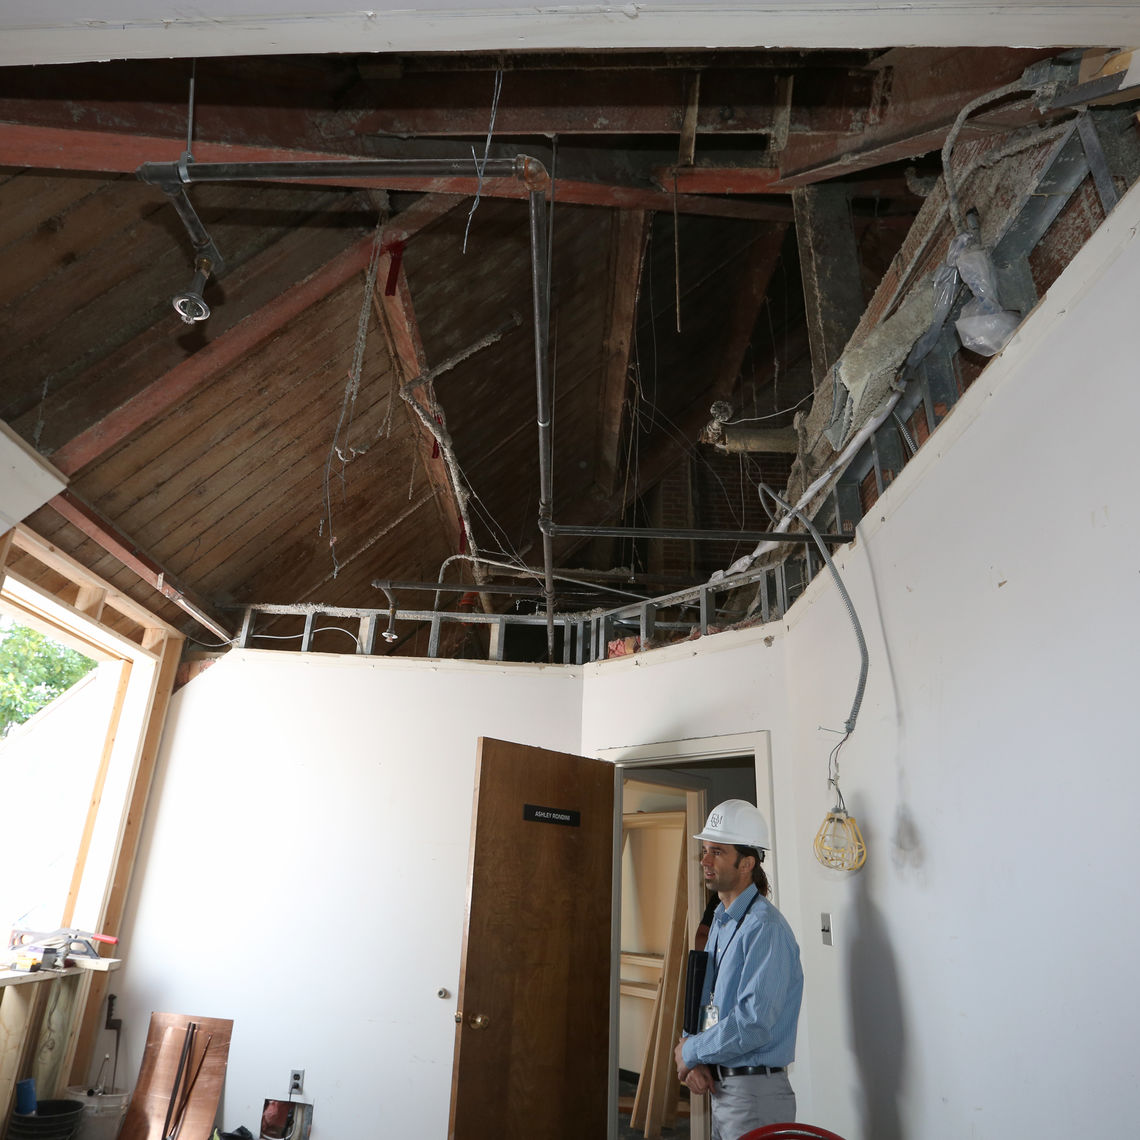 Built in the 1930s, Keiper Liberal Arts building's current renovation involves more than simple cosmetic work, The building's last significant renovation was 1980, said Assistant Director of Project Management Sheldon Wenger.